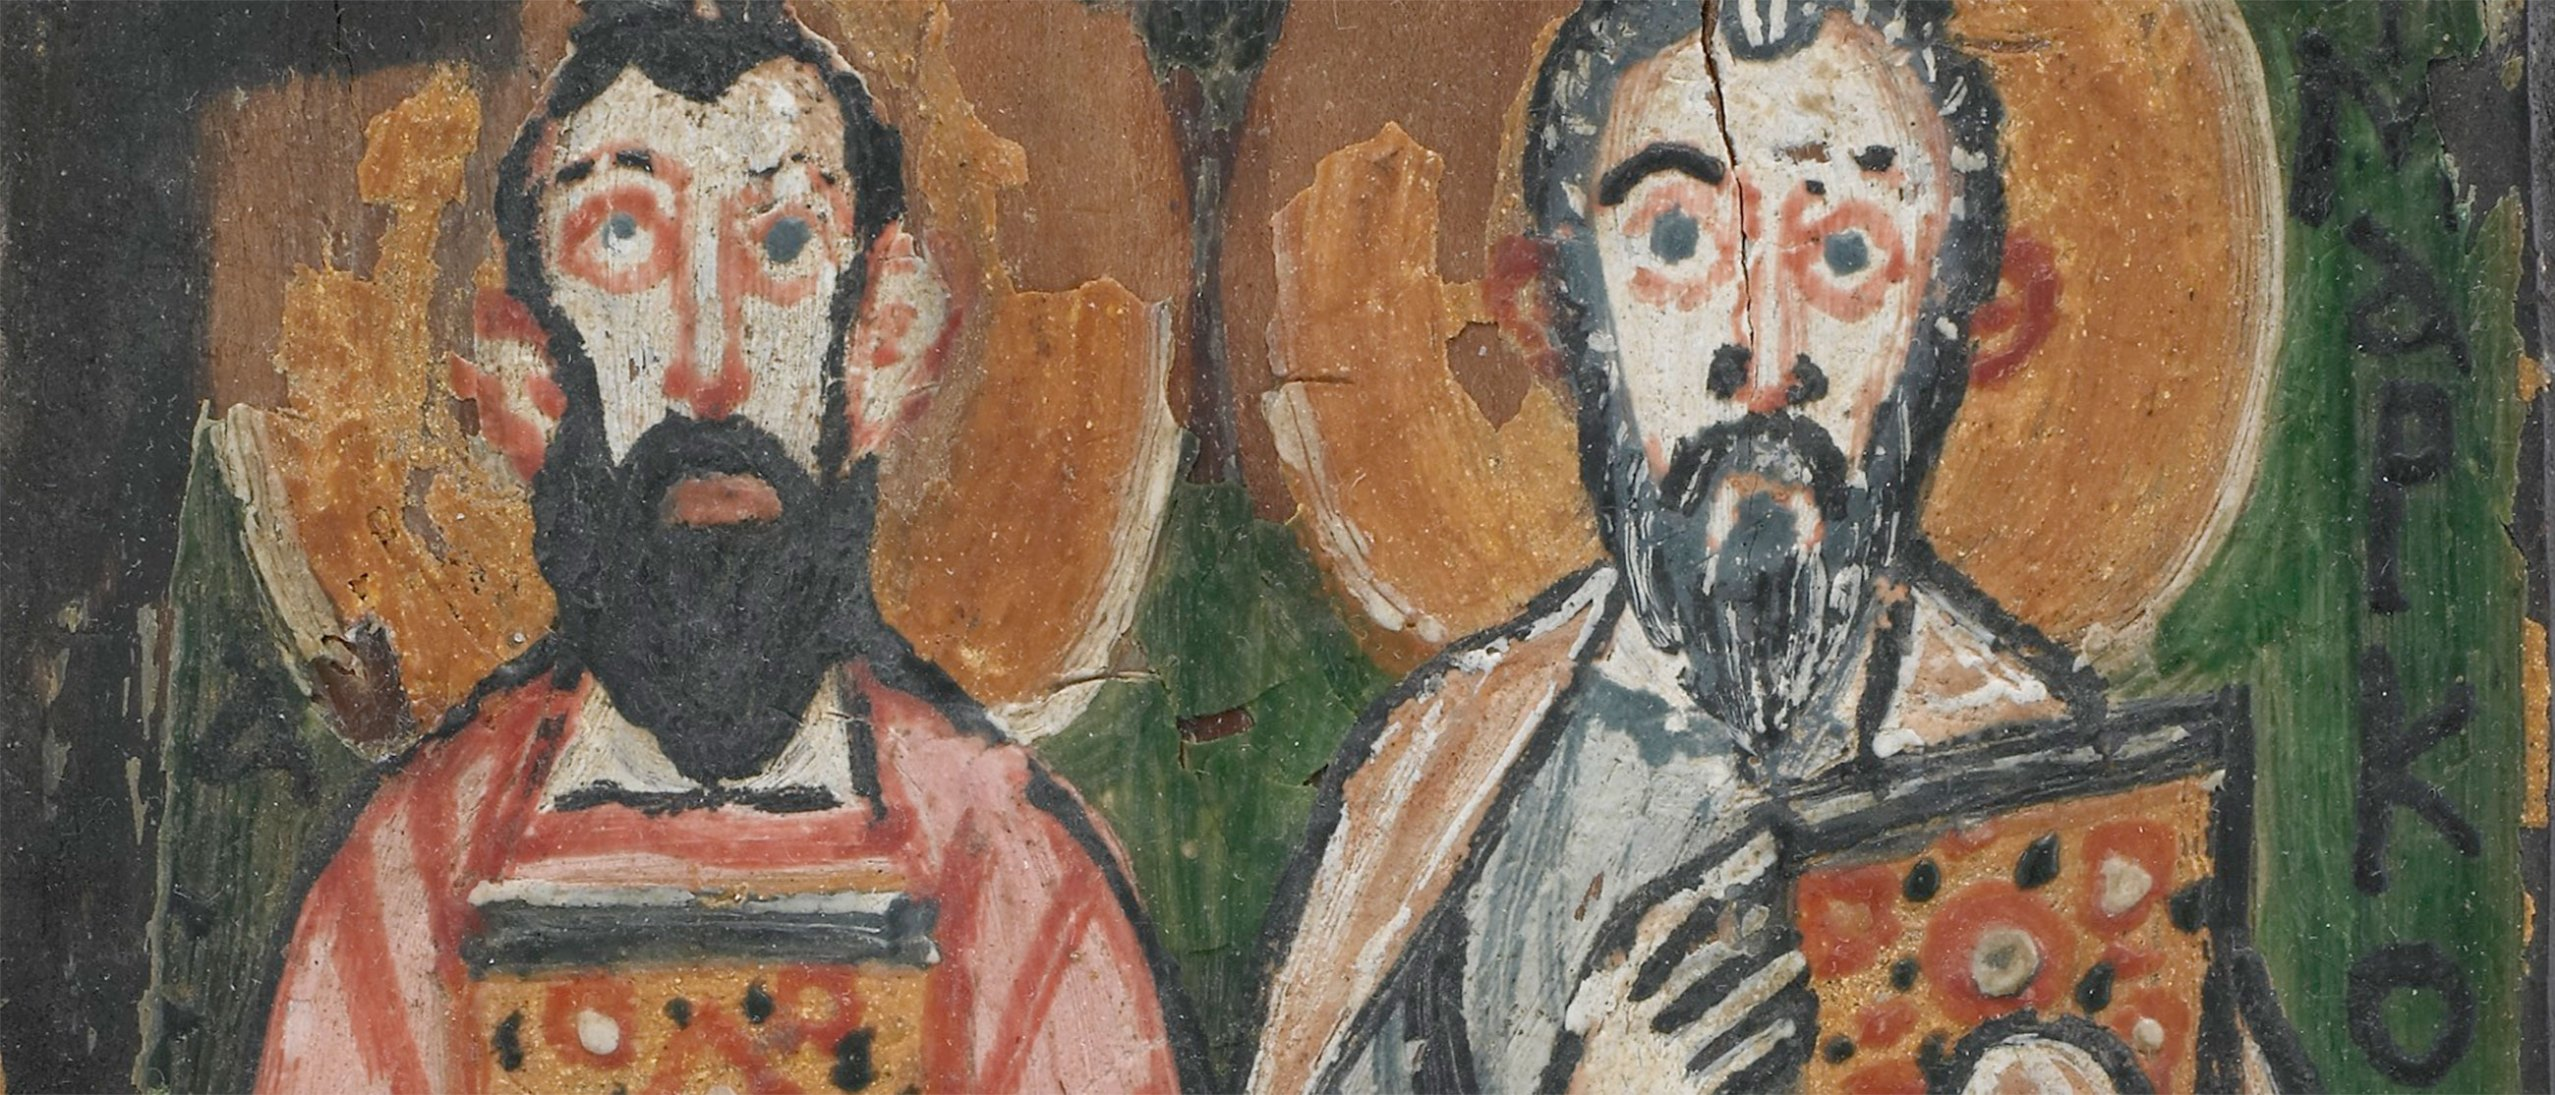 detail of a manuscript cover, two bearded men holding two books, halos behind their heads